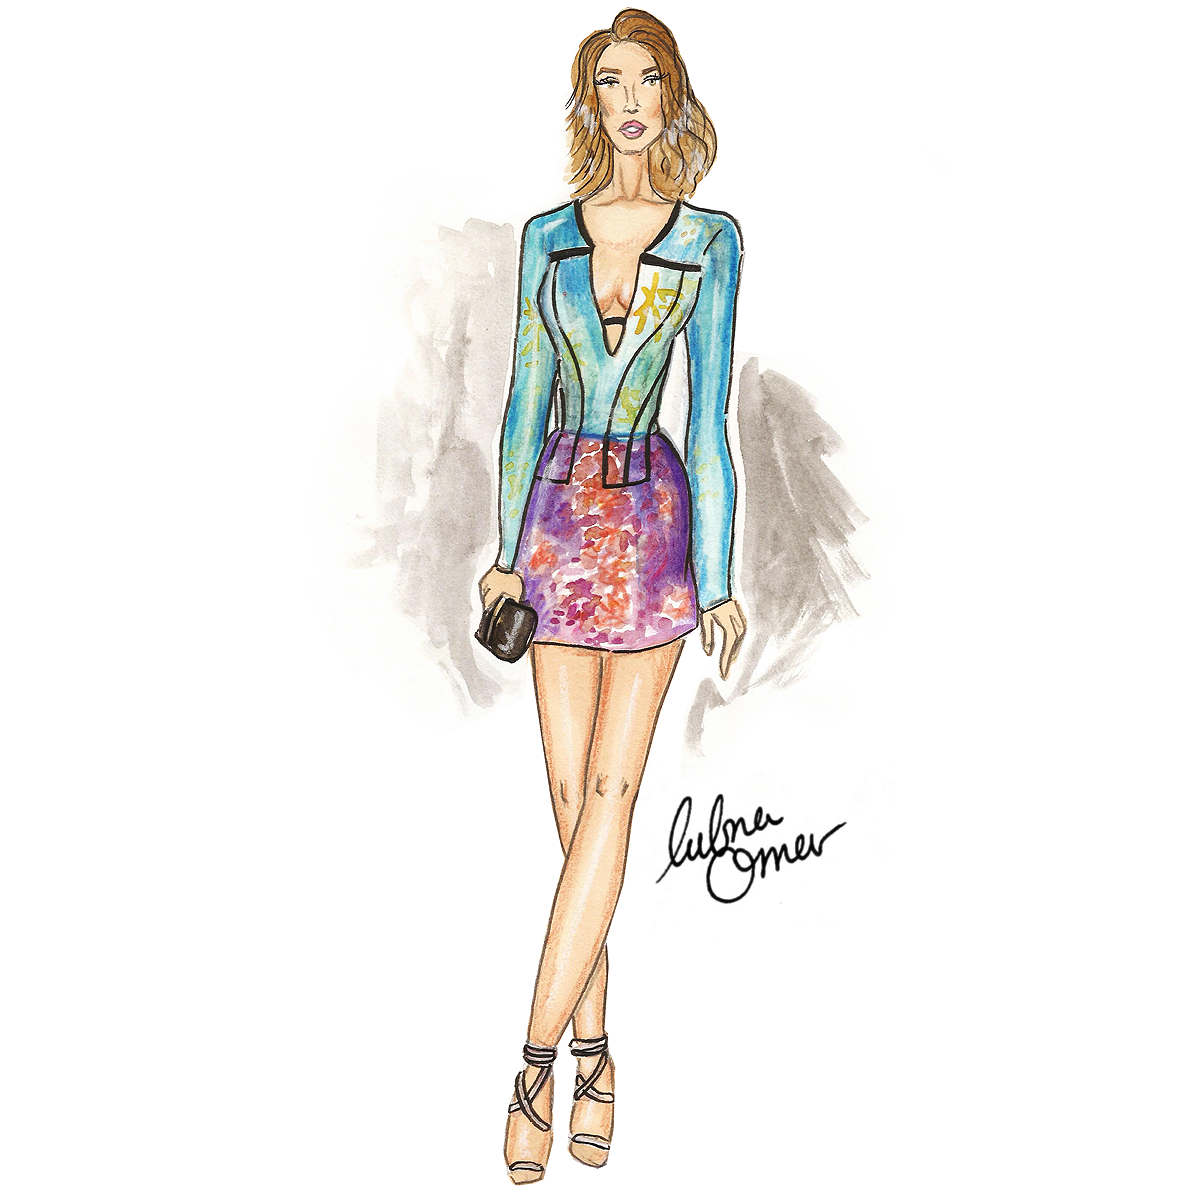 Rosie Huntington-Whiteley in Burberry illustration by Lubna Omar